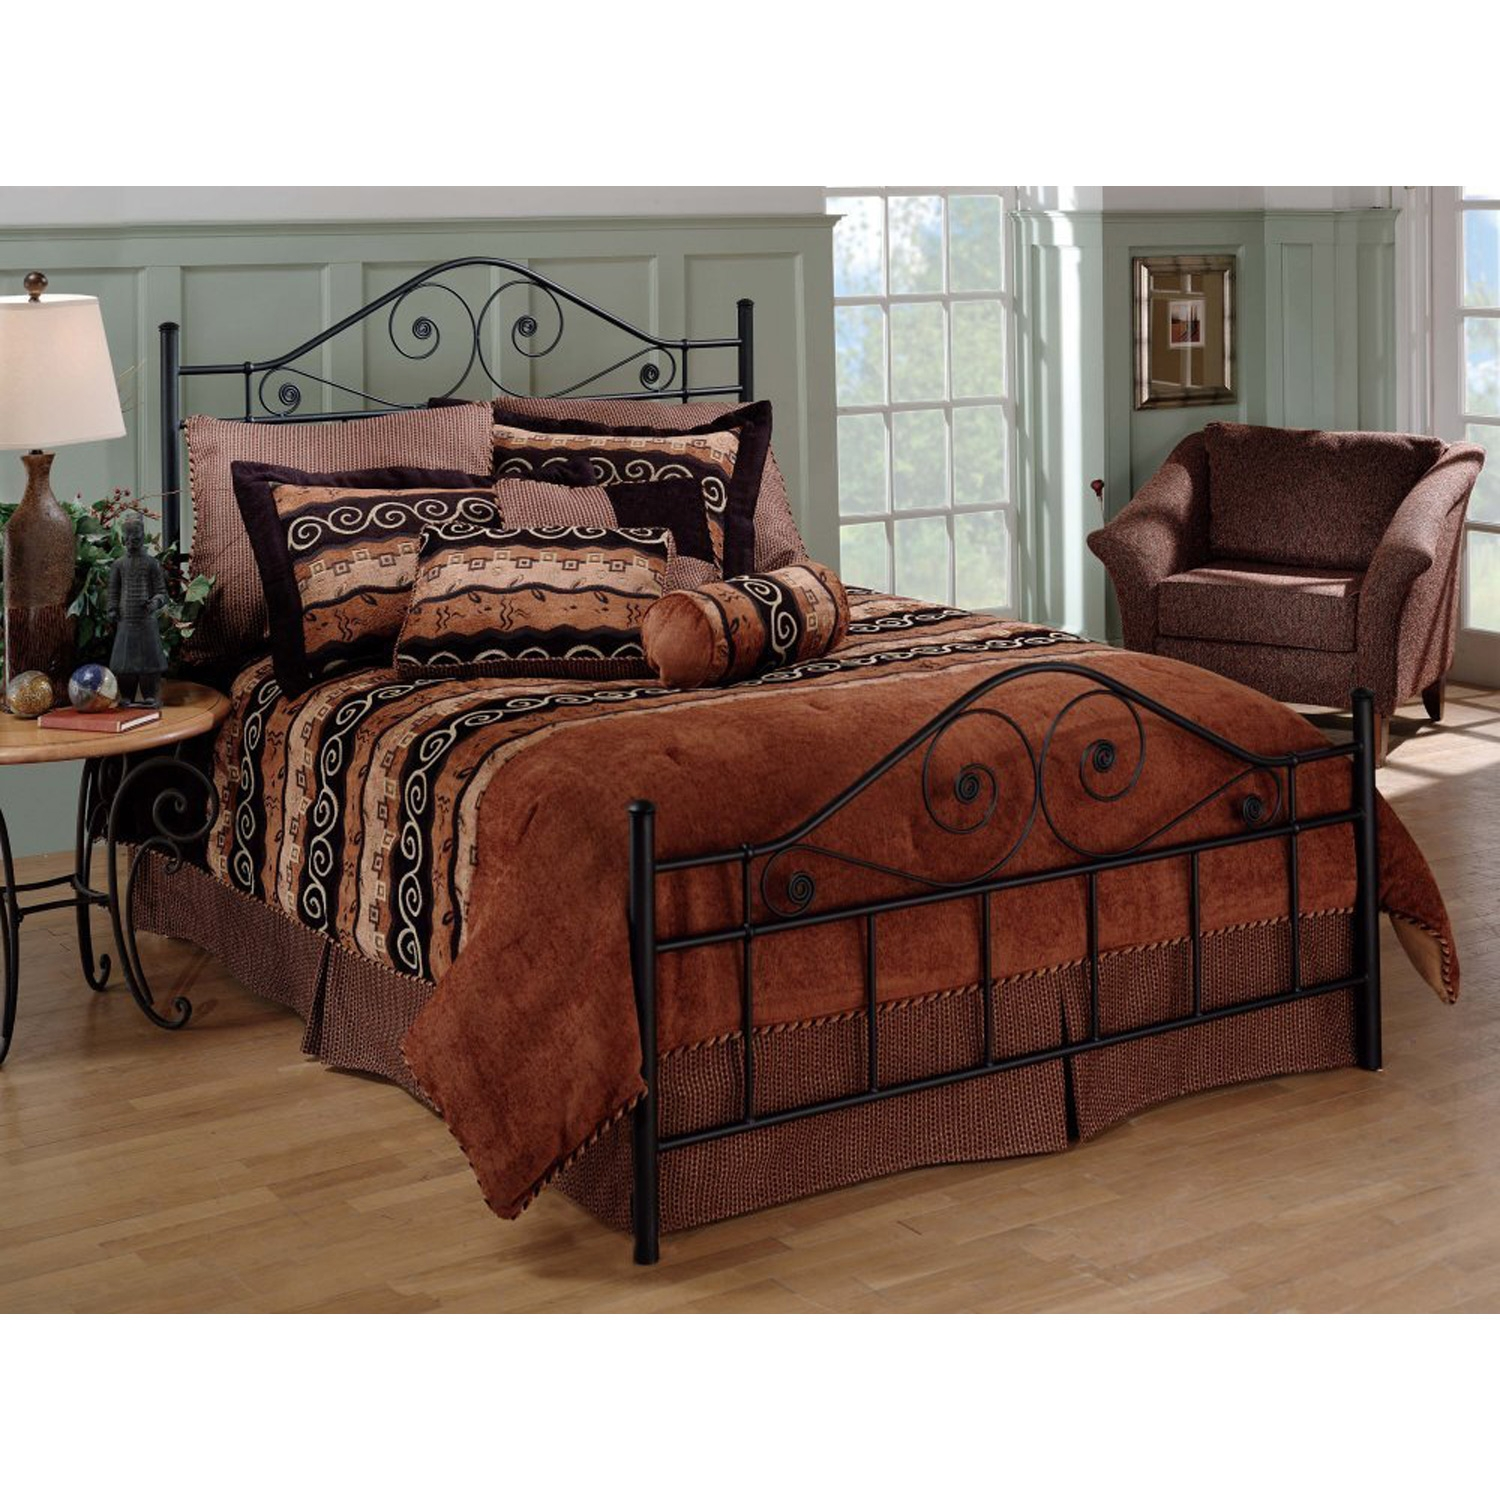 queen size black metal bed with scrollwork headboard and footboard - Black Metal Bed Frame Queen